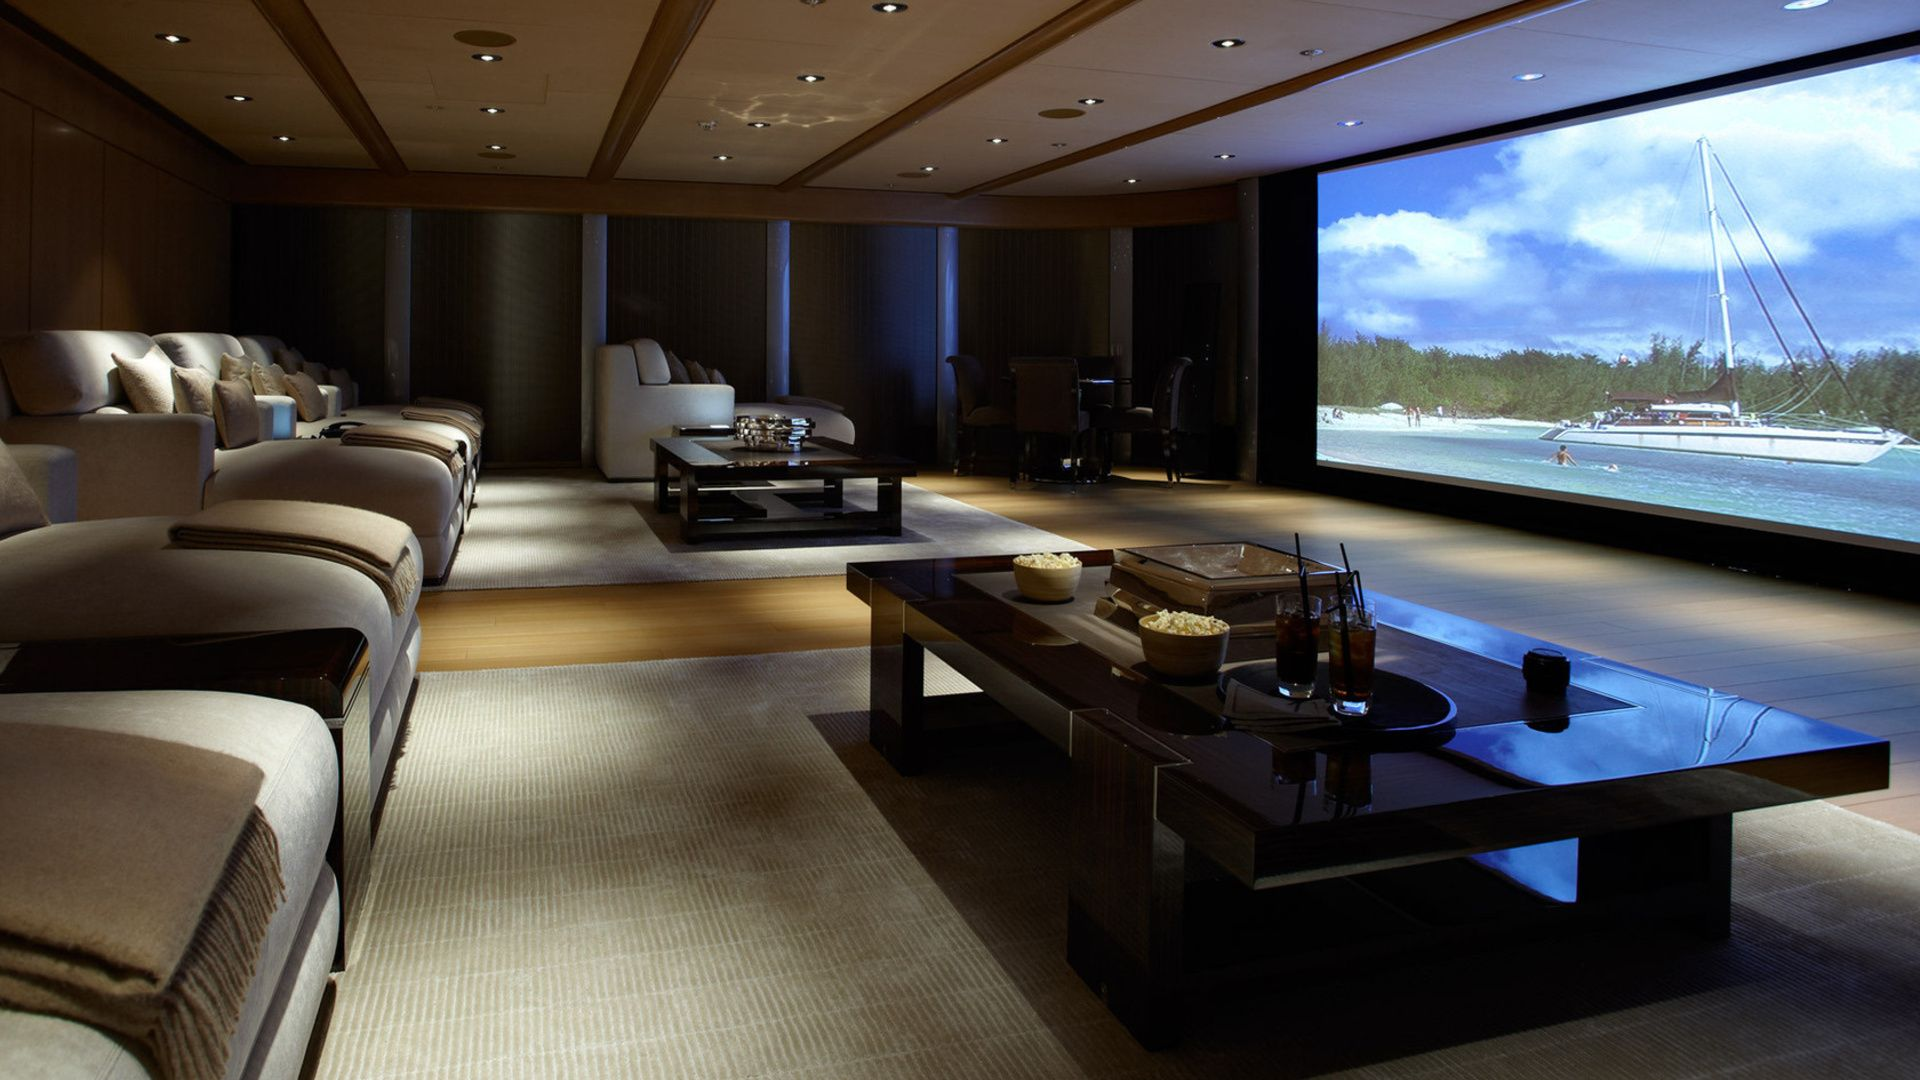 Afbeeldingsresultaat Voor Home Cinema Big Screen